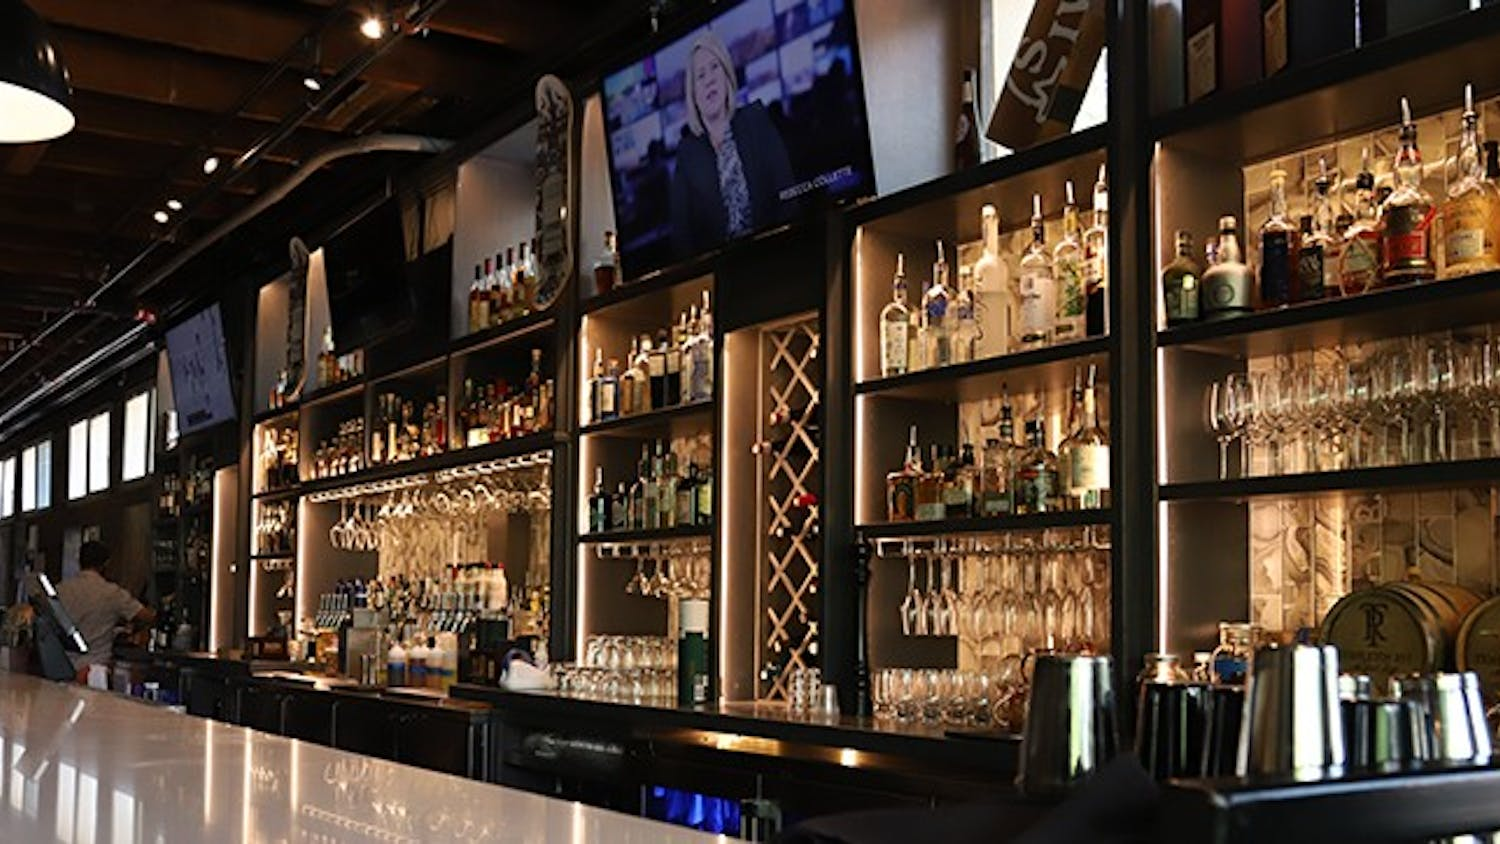 The bar inside Hendrix restaurant is stacked with different wines and liquors along with different glasses.